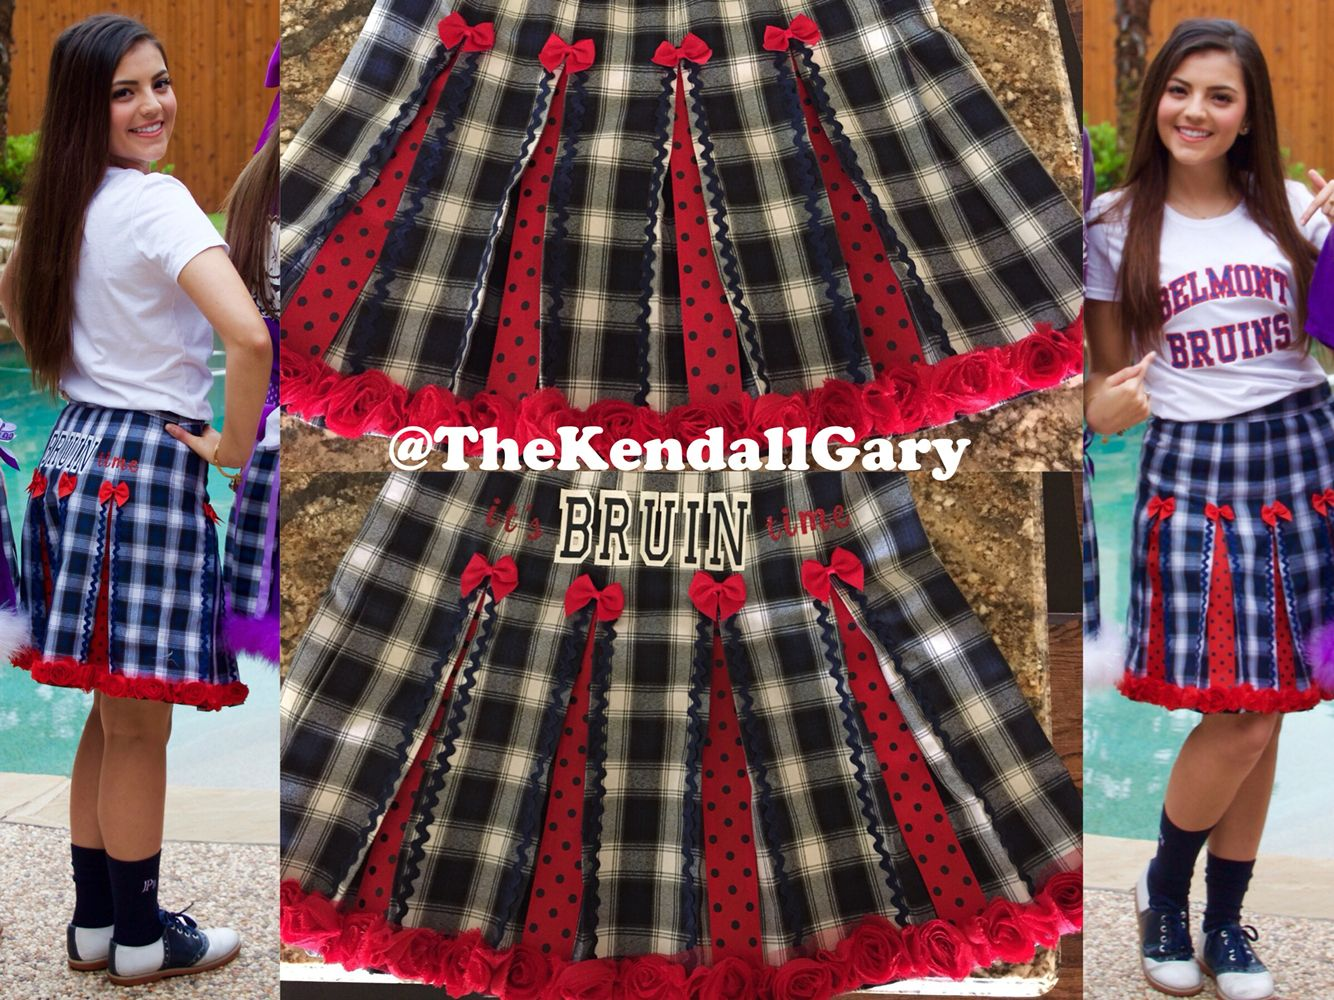 f683629fcd College Day--Decorated uniform school skirt for Belmont University (Belmont  Bruins, It's Bruin Time). | Pinterest: @TheKendallGary